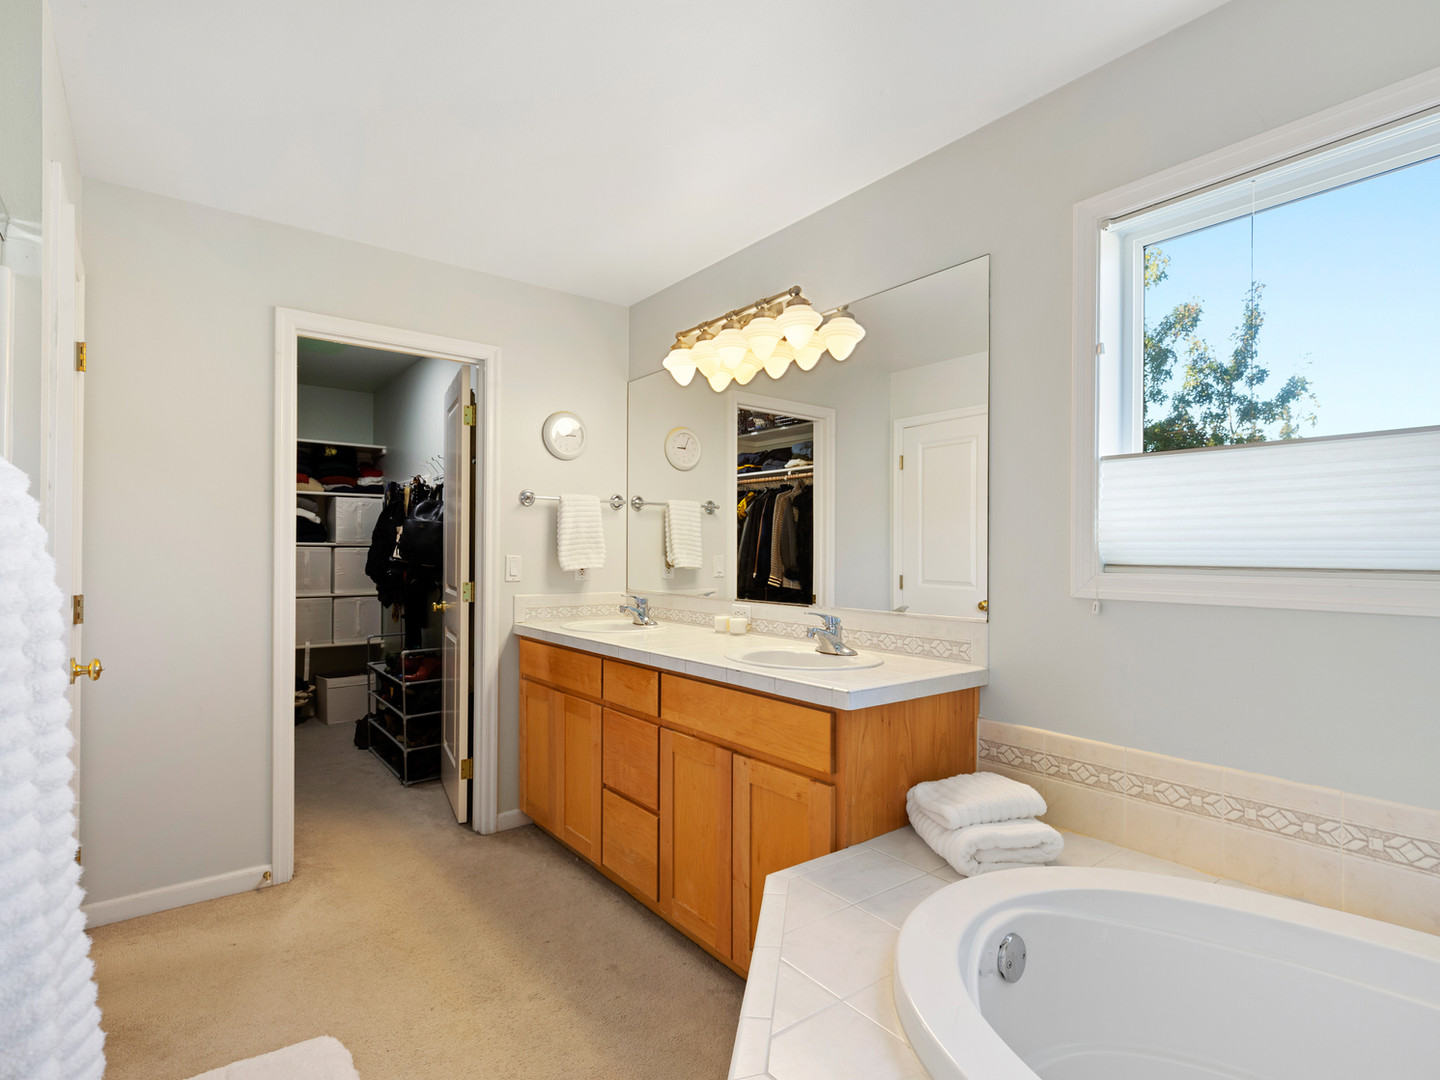 3459 NW 115th Ave (25 of 34).jpg